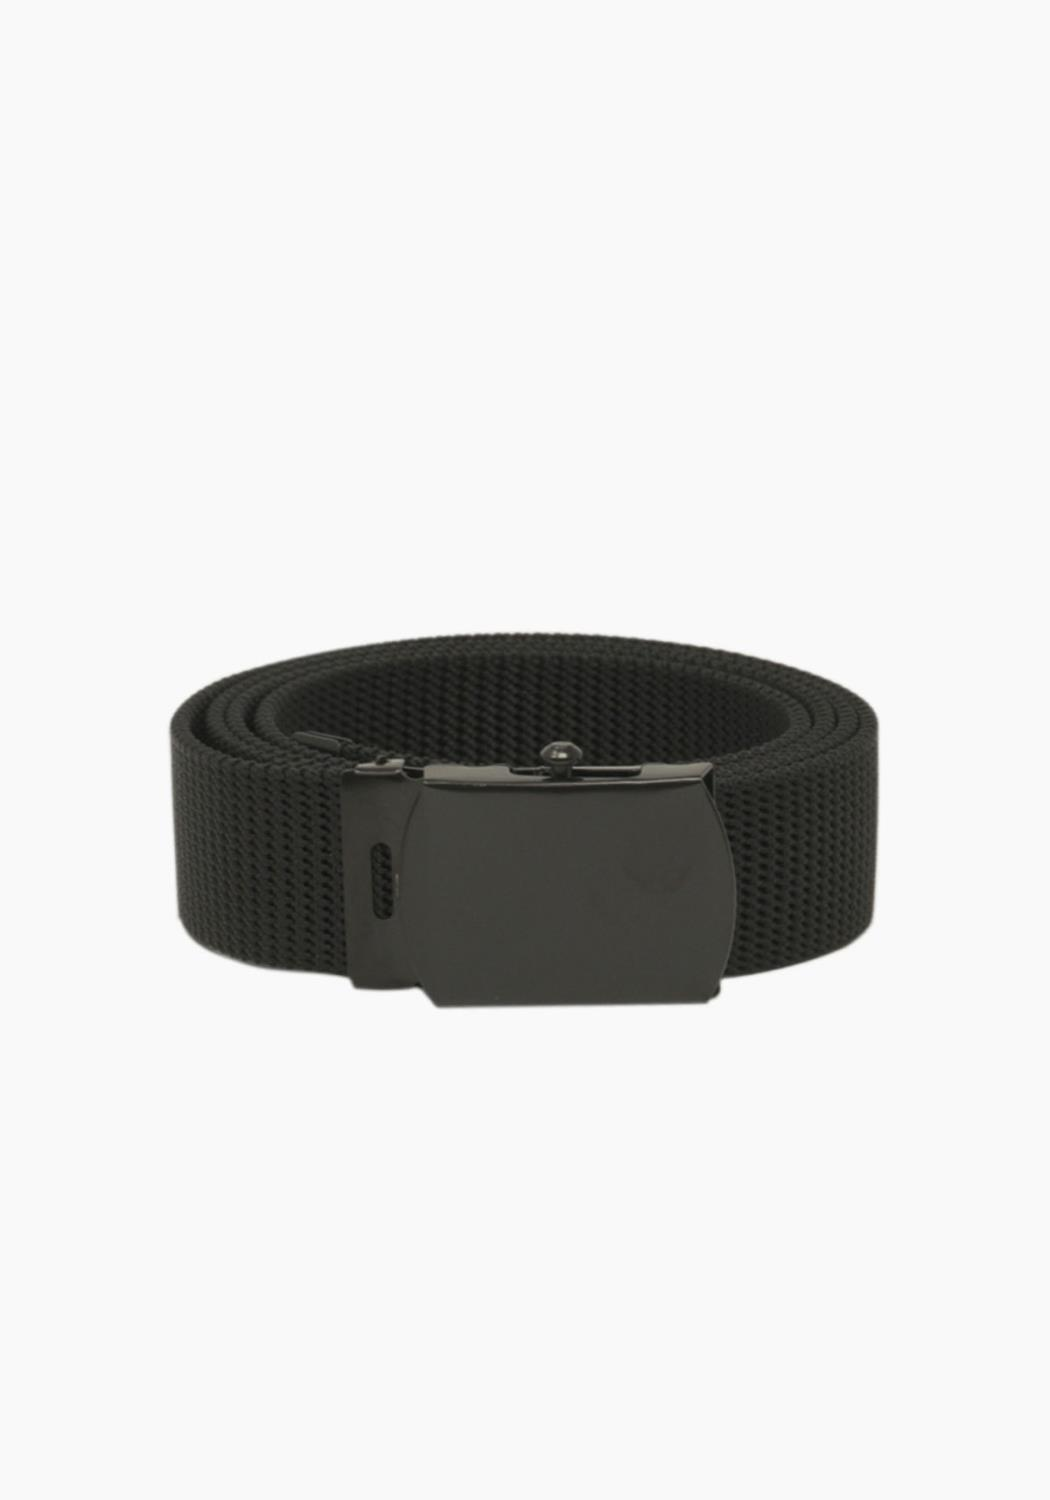 Rothco Nylon Web Belt - Black Webbing